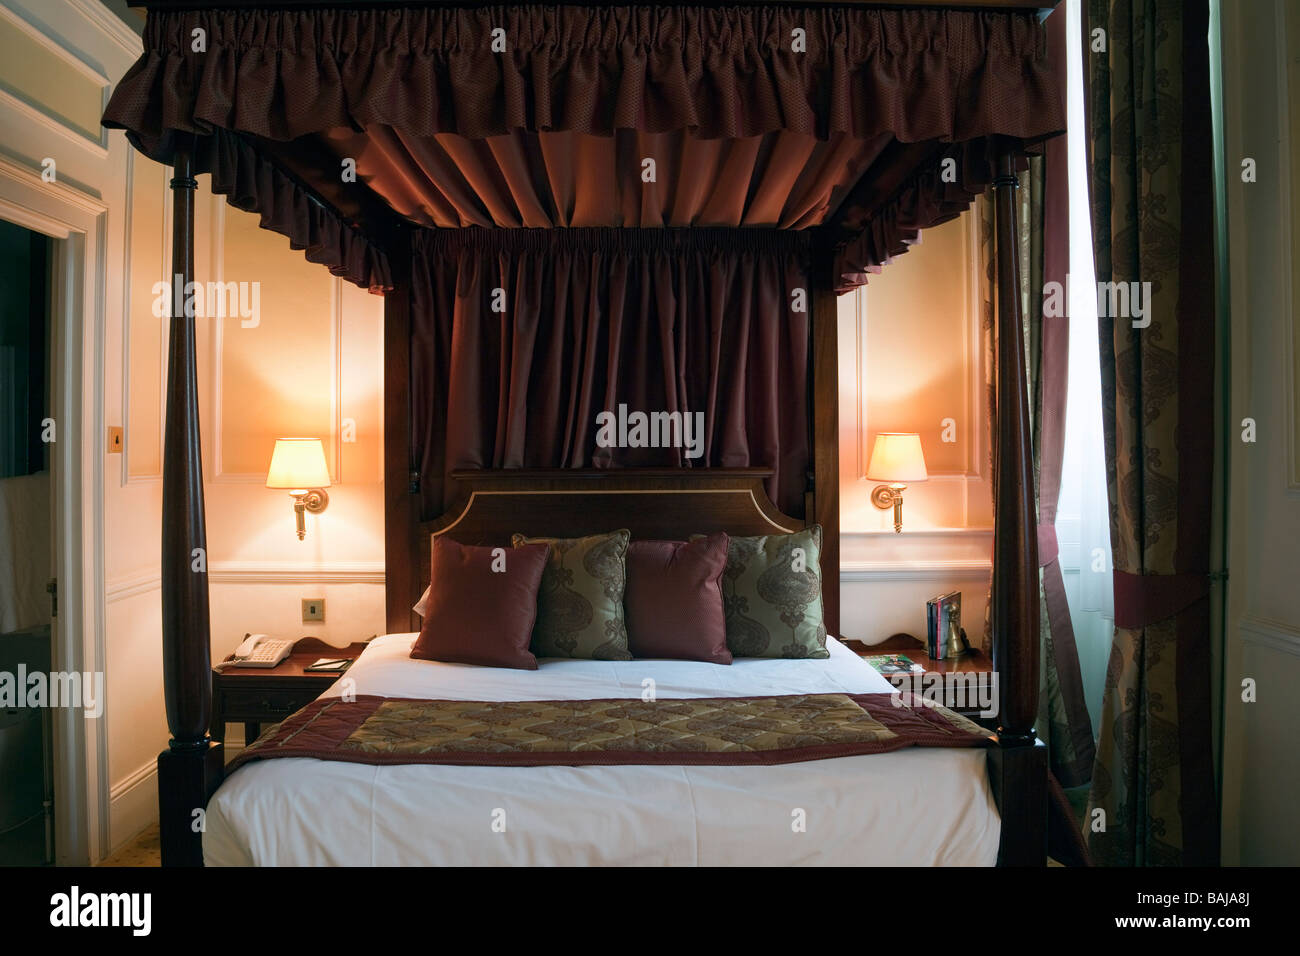 bedroom, Grange Blooms Hotel, Montague Street, London, England - Stock Image